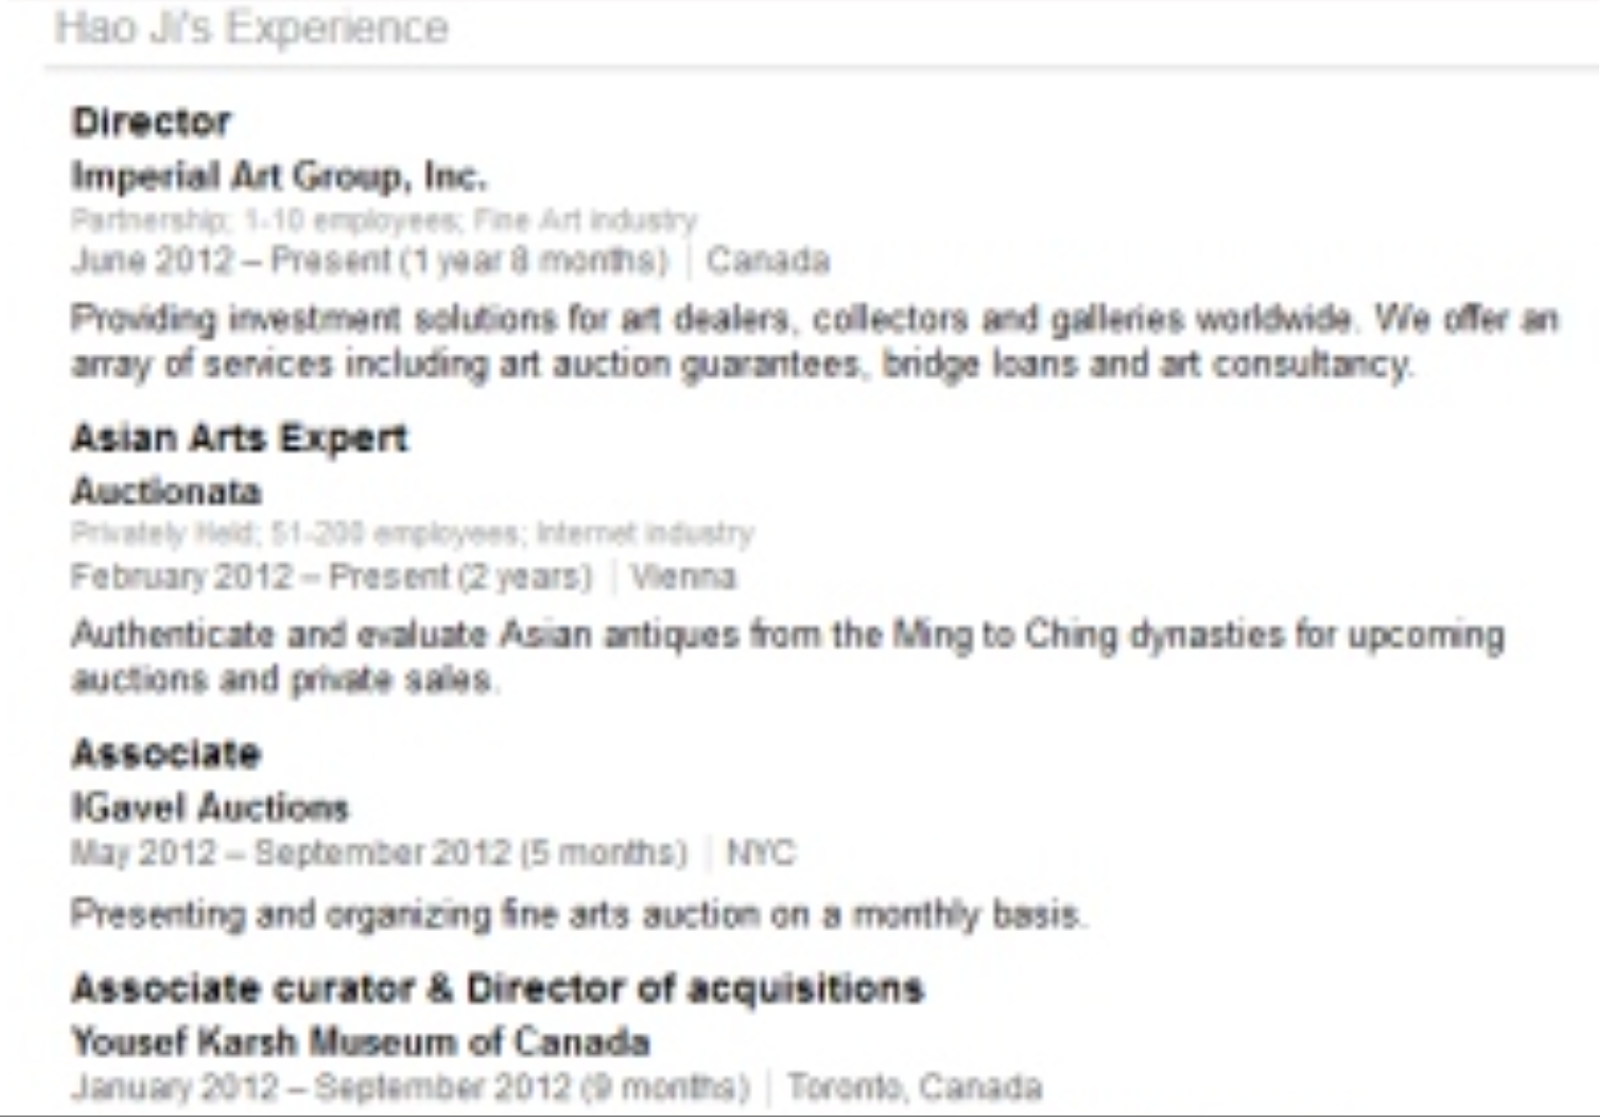 Linkedin resume of Convicted fraudster and former Auctionata employee Hao Ji aka Joseph Hokai Tang